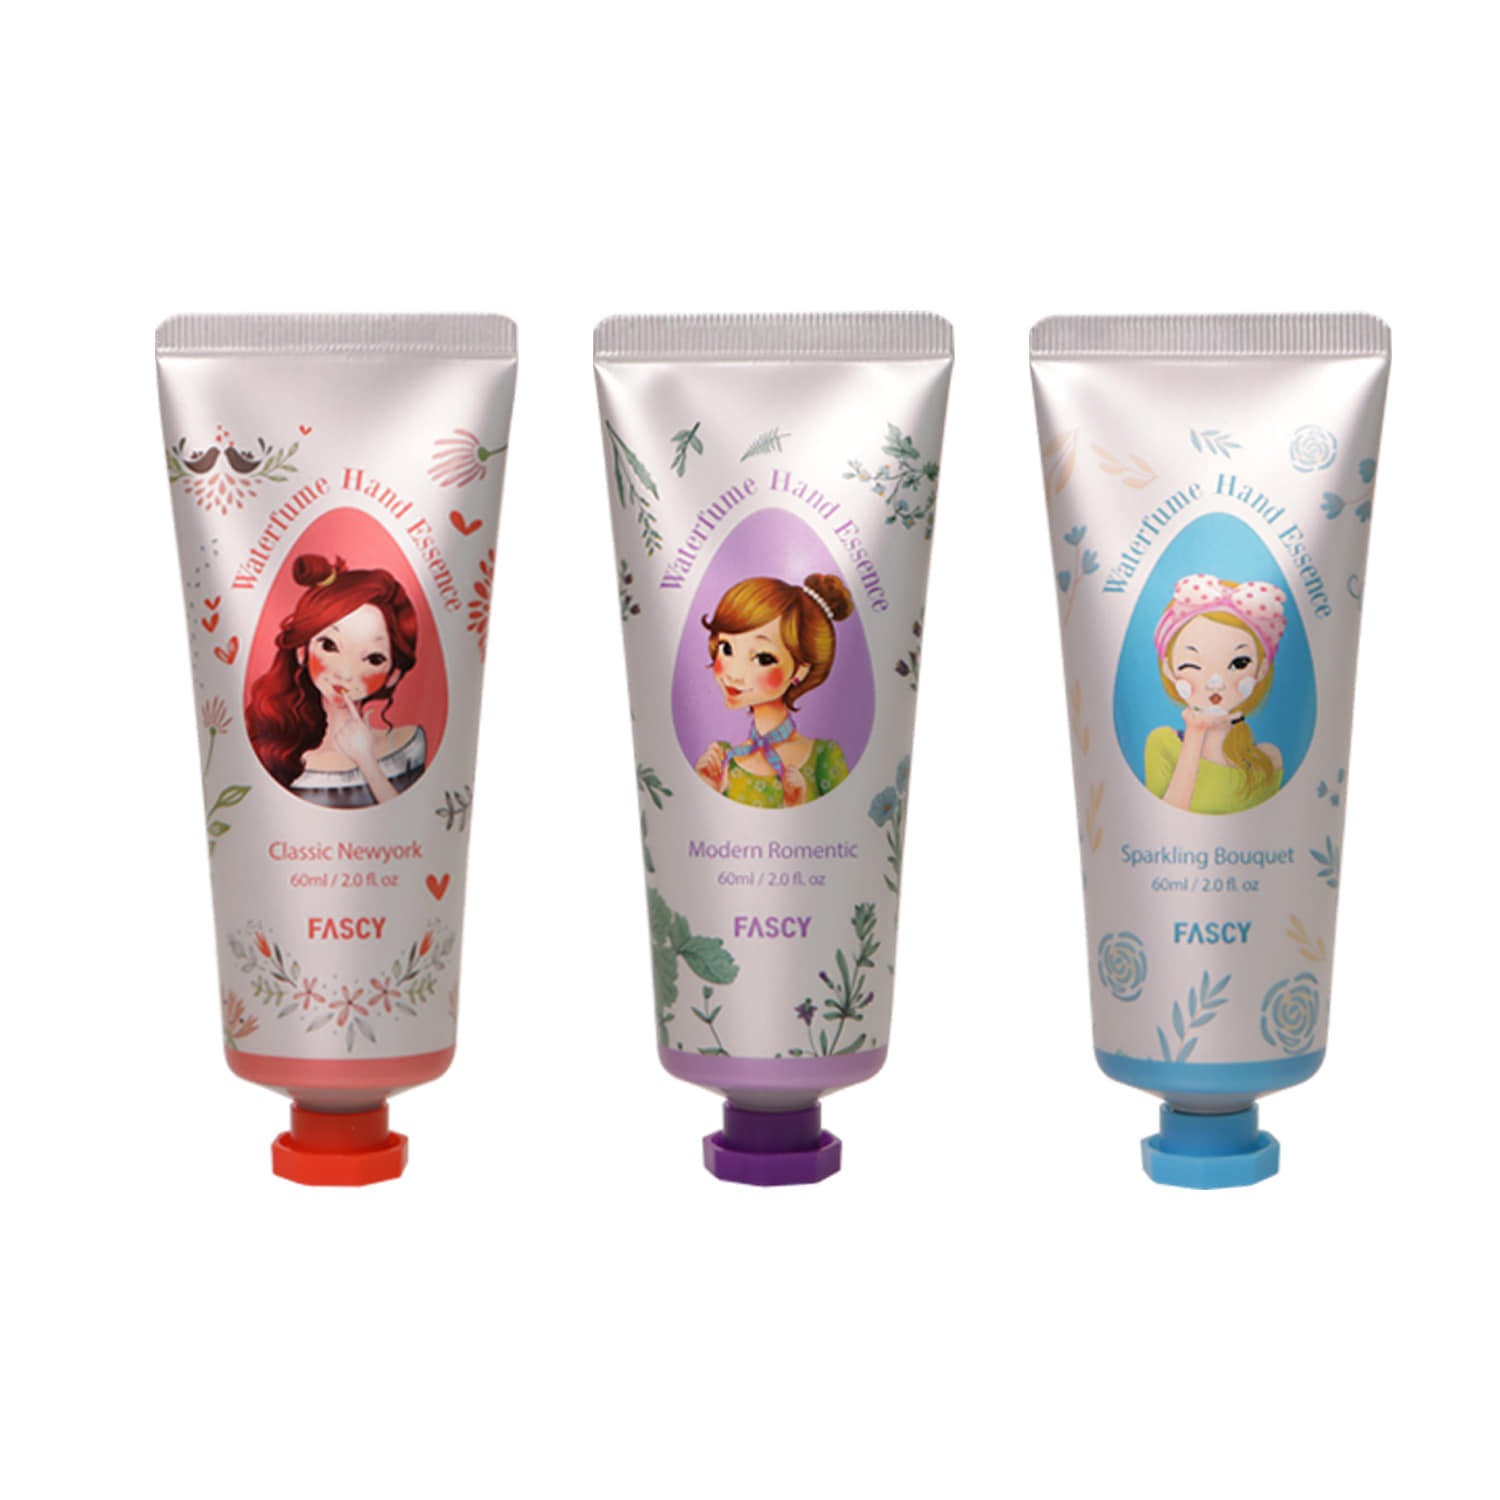 container of hand essence, hand moisturizer product